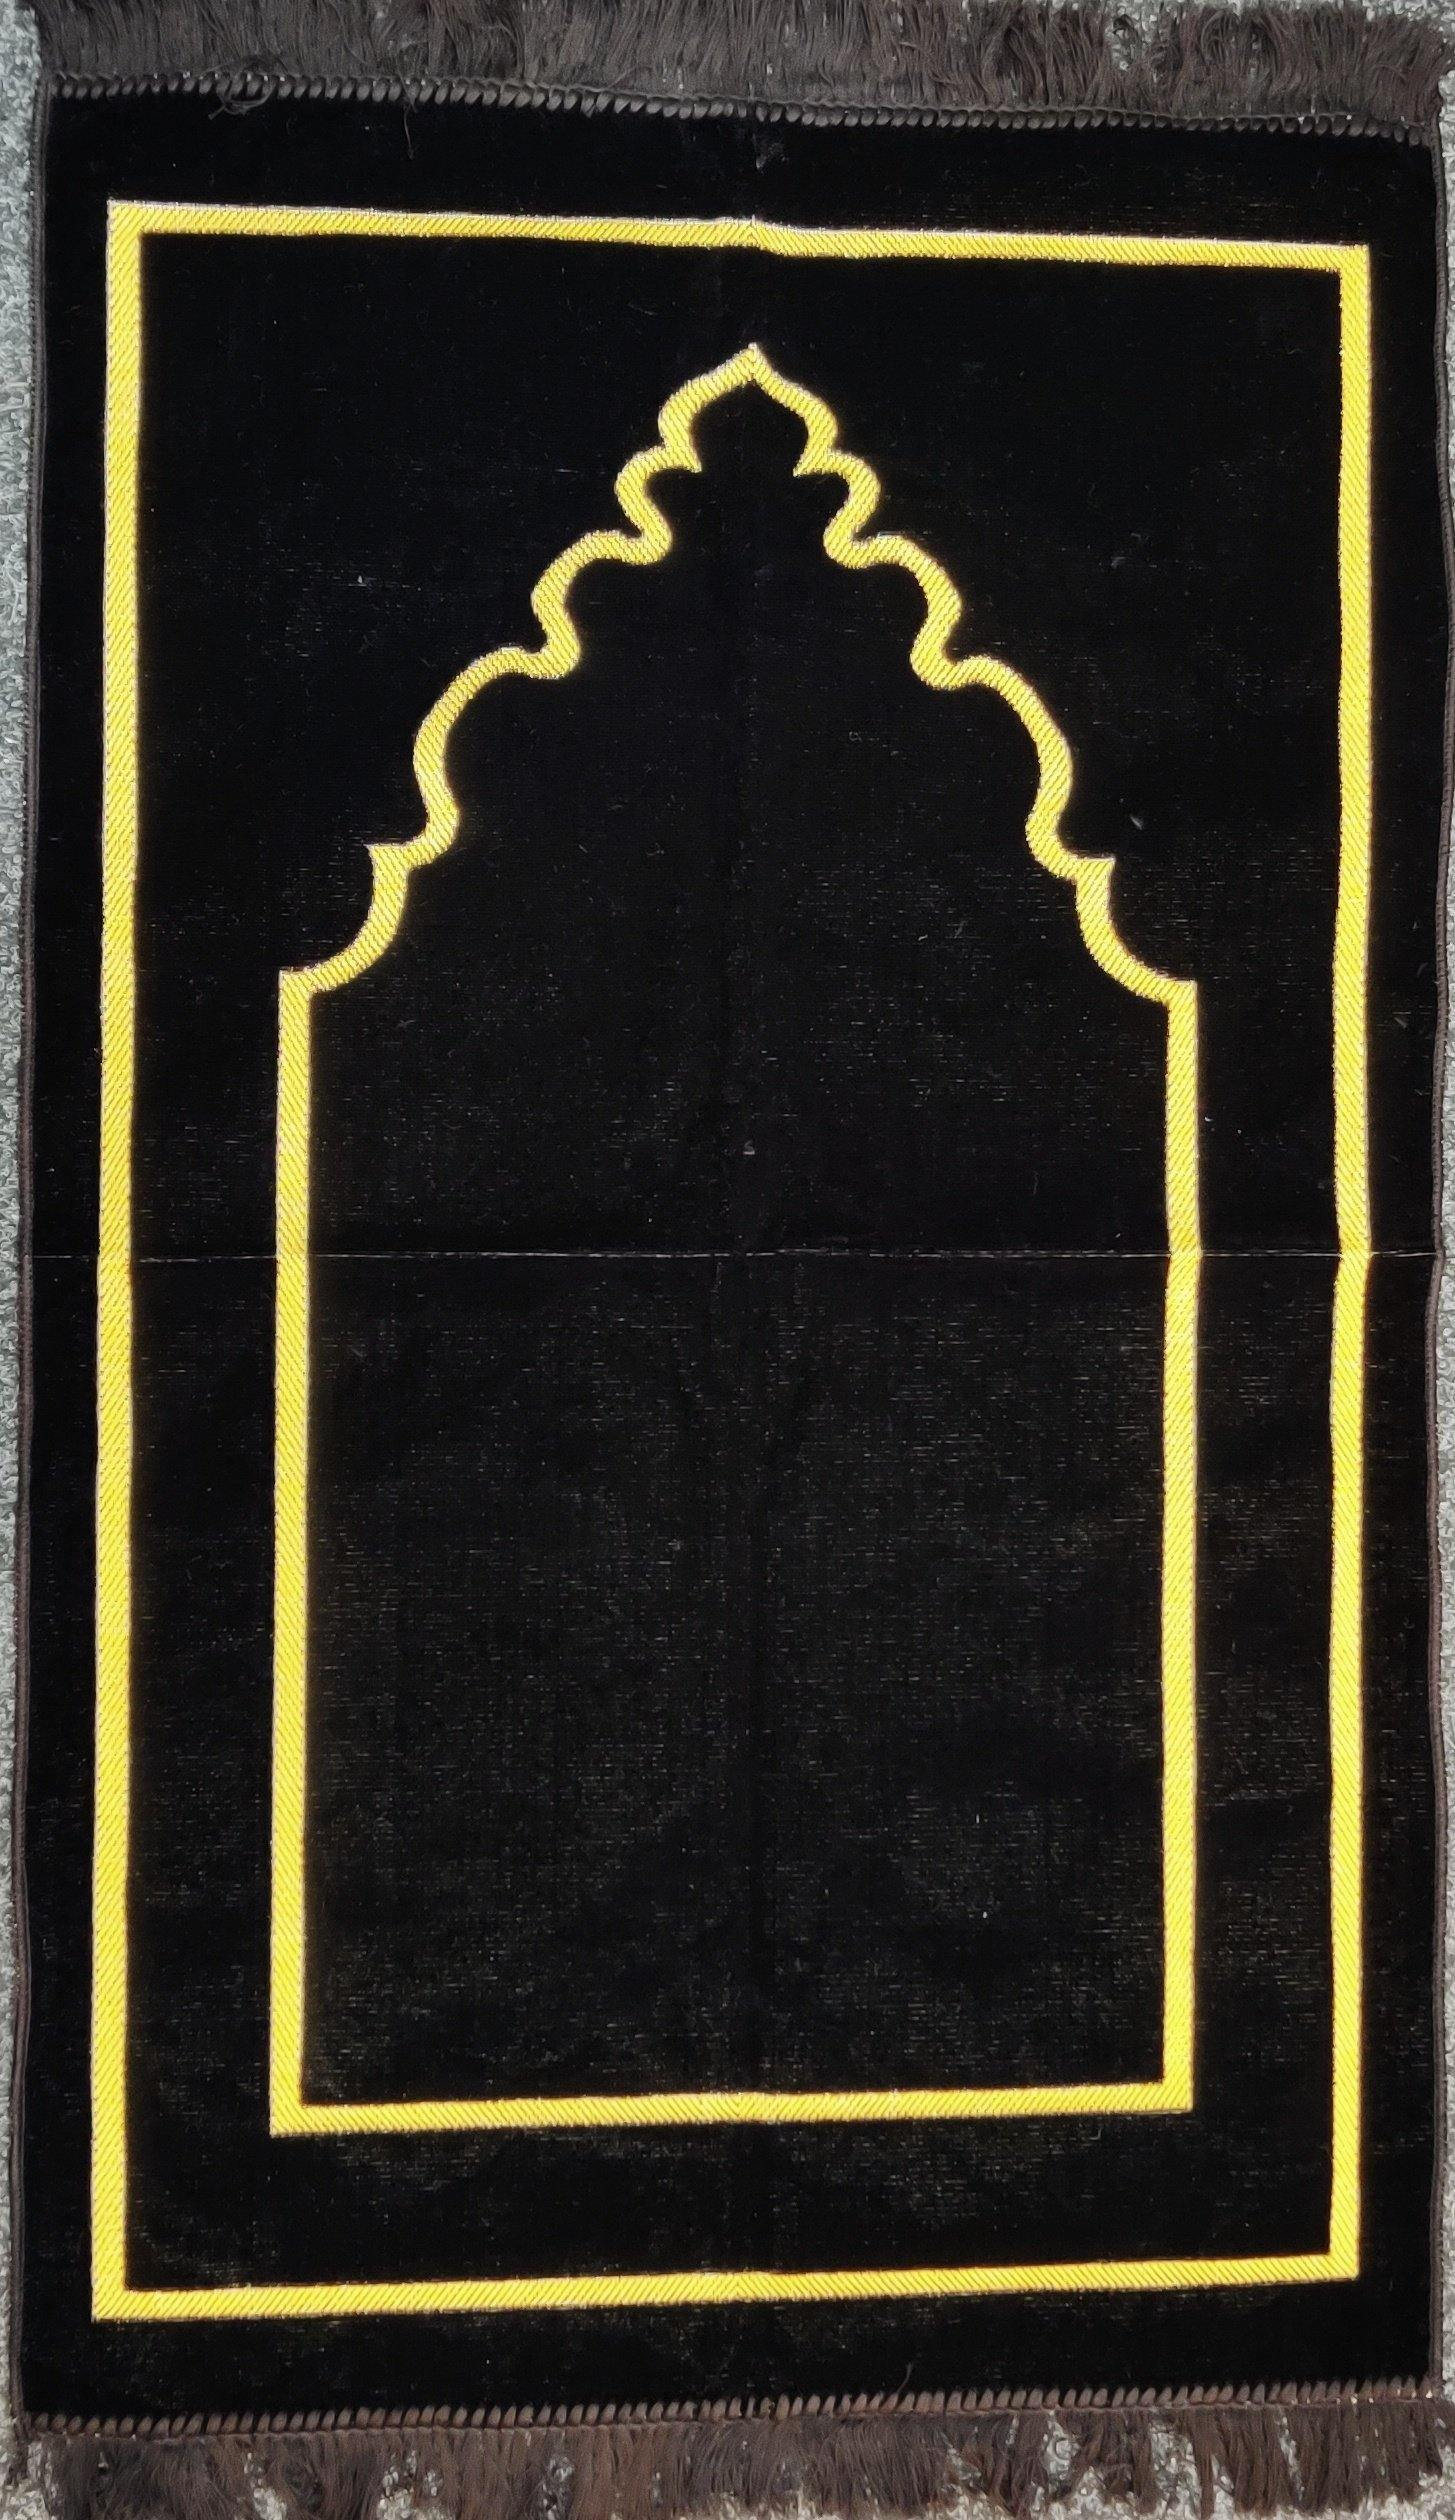 Black Plain prayer mat sajjadah jaynamaz salah prayer rug Turklish prayer mat - The Islamic Shop